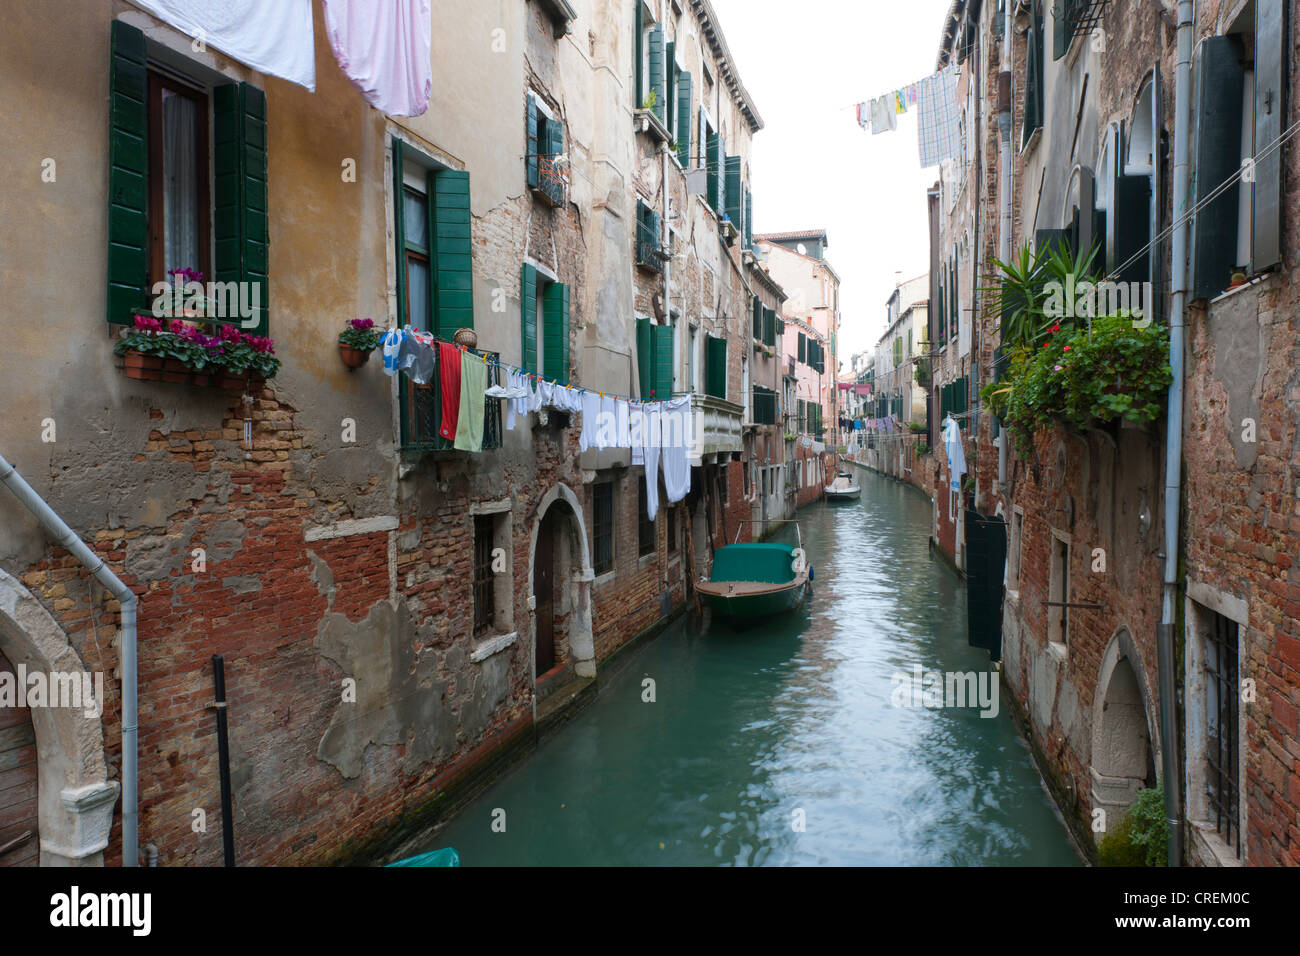 drying laundry italy stockfotos drying laundry italy bilder alamy. Black Bedroom Furniture Sets. Home Design Ideas